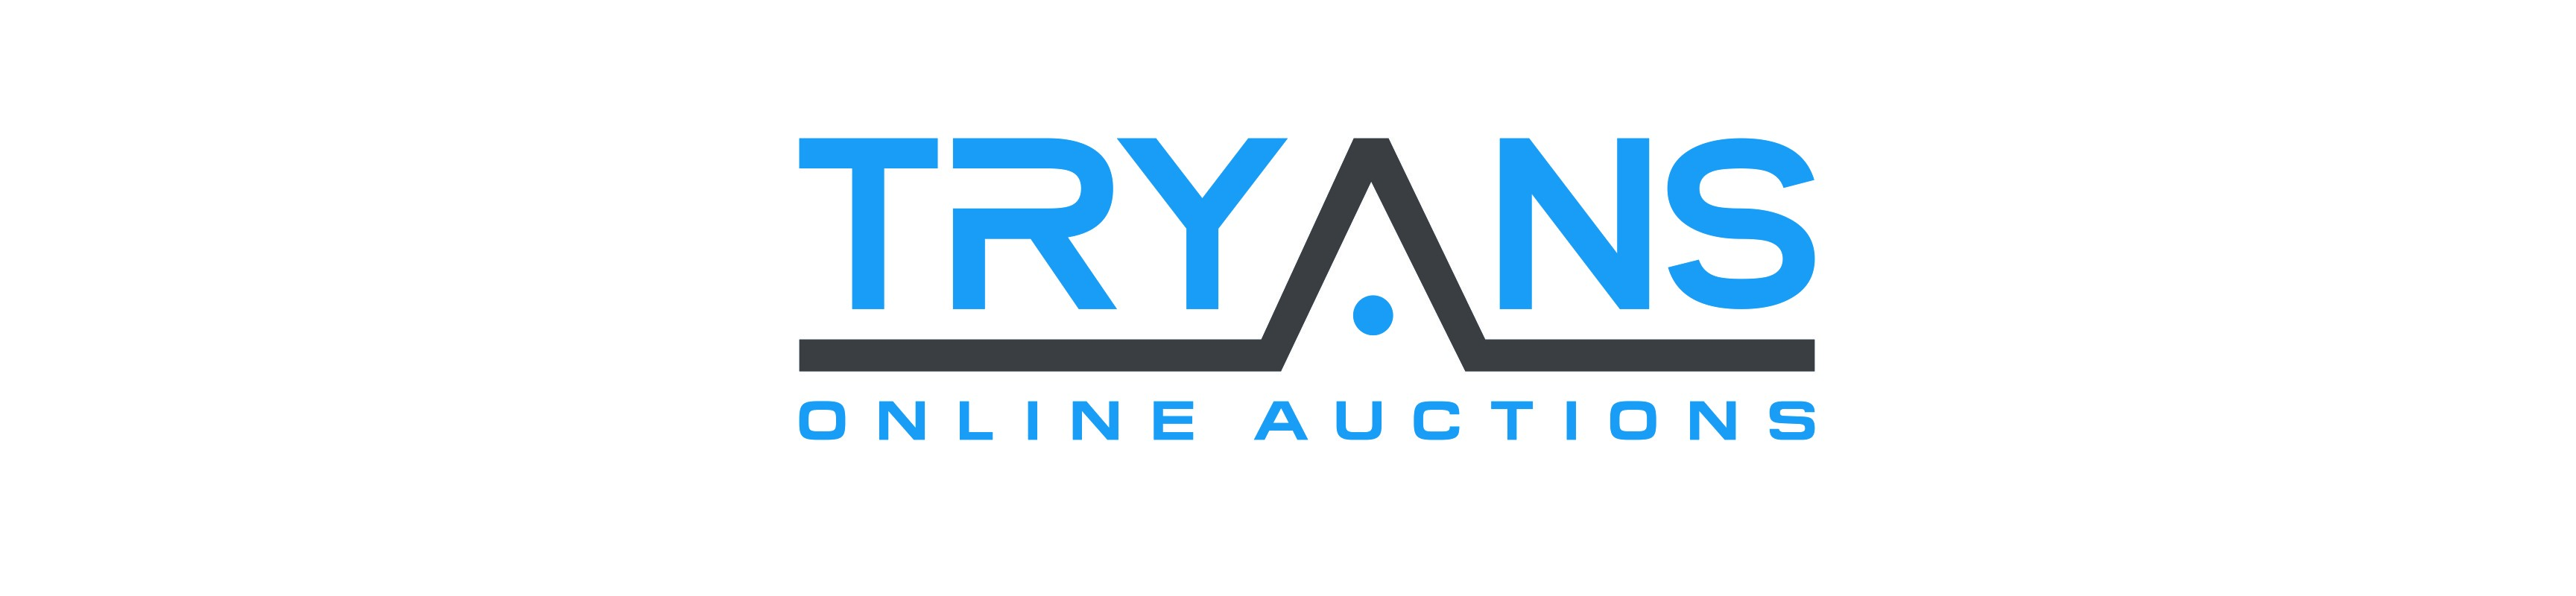 Tryans Online Auctions & Auction Center